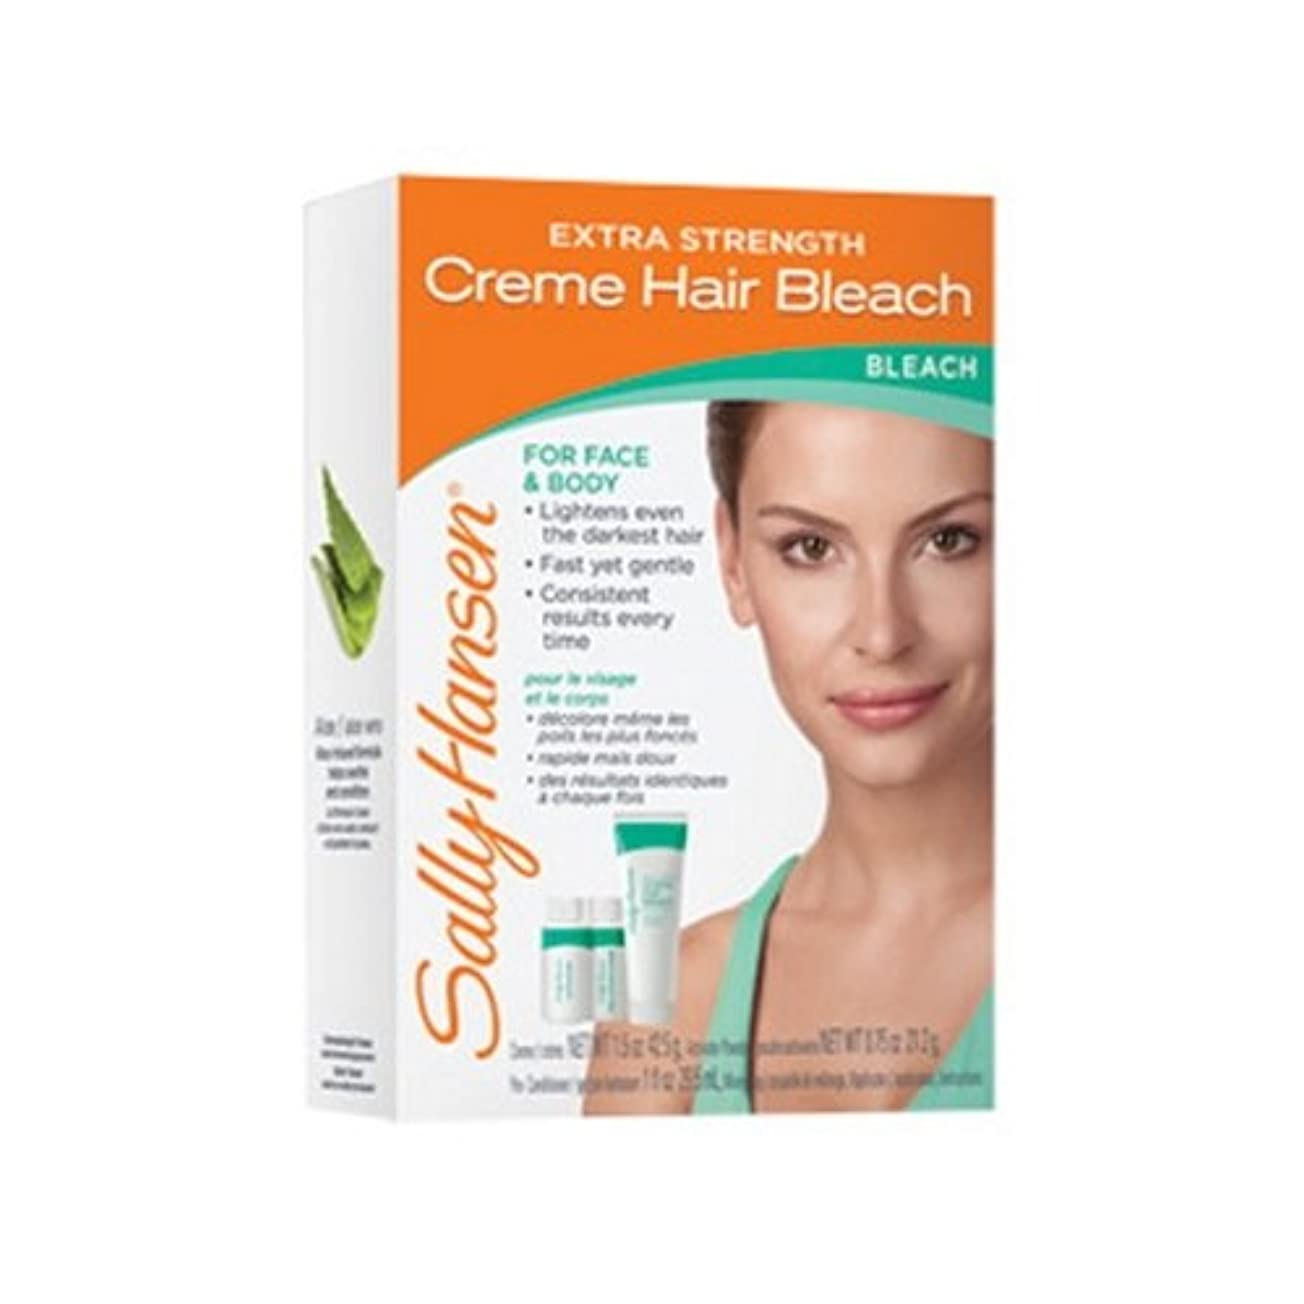 SALLY HANSEN Extra Strength Creme Hair Bleach for Face & Body - SH2010 (並行輸入品)